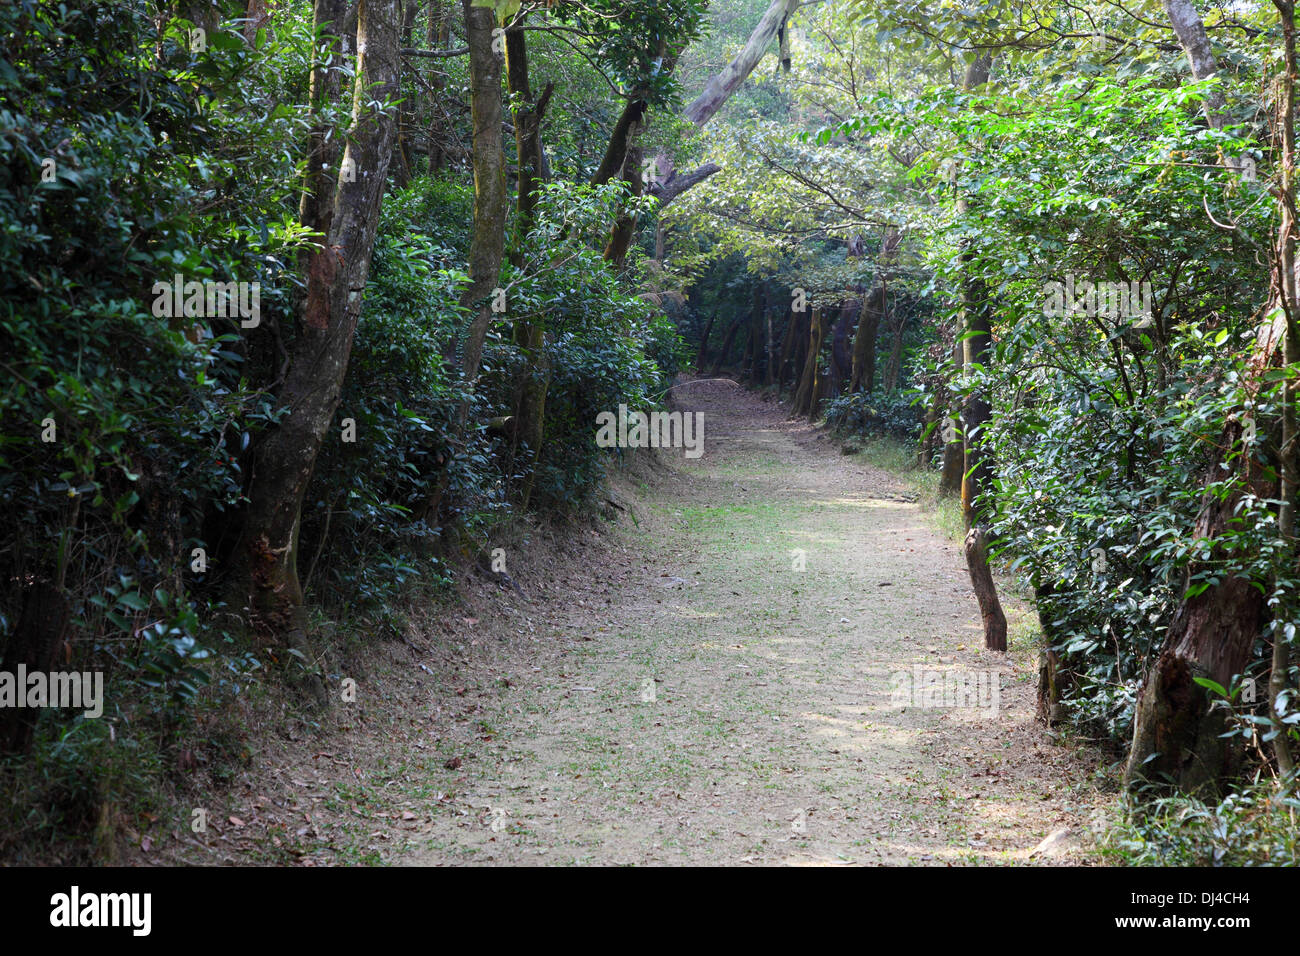 Trail in the forest of Lantau Island, Hong Kong - Stock Image